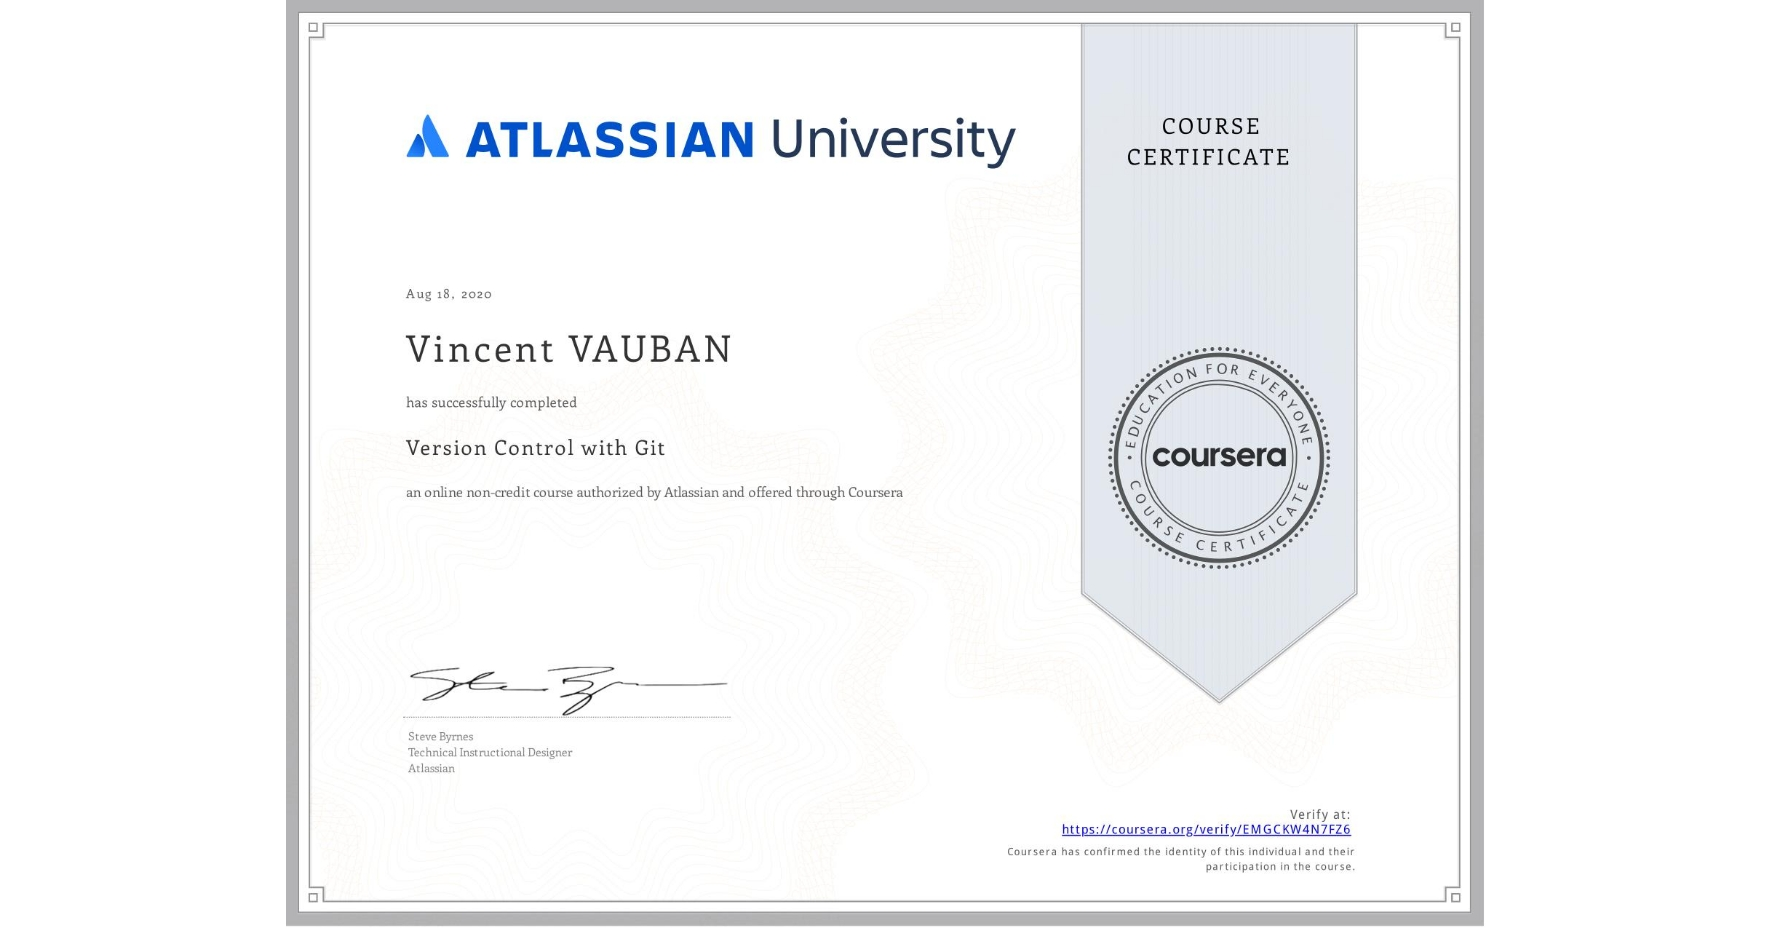 View certificate for Vincent VAUBAN, Version Control with Git, an online non-credit course authorized by Atlassian and offered through Coursera